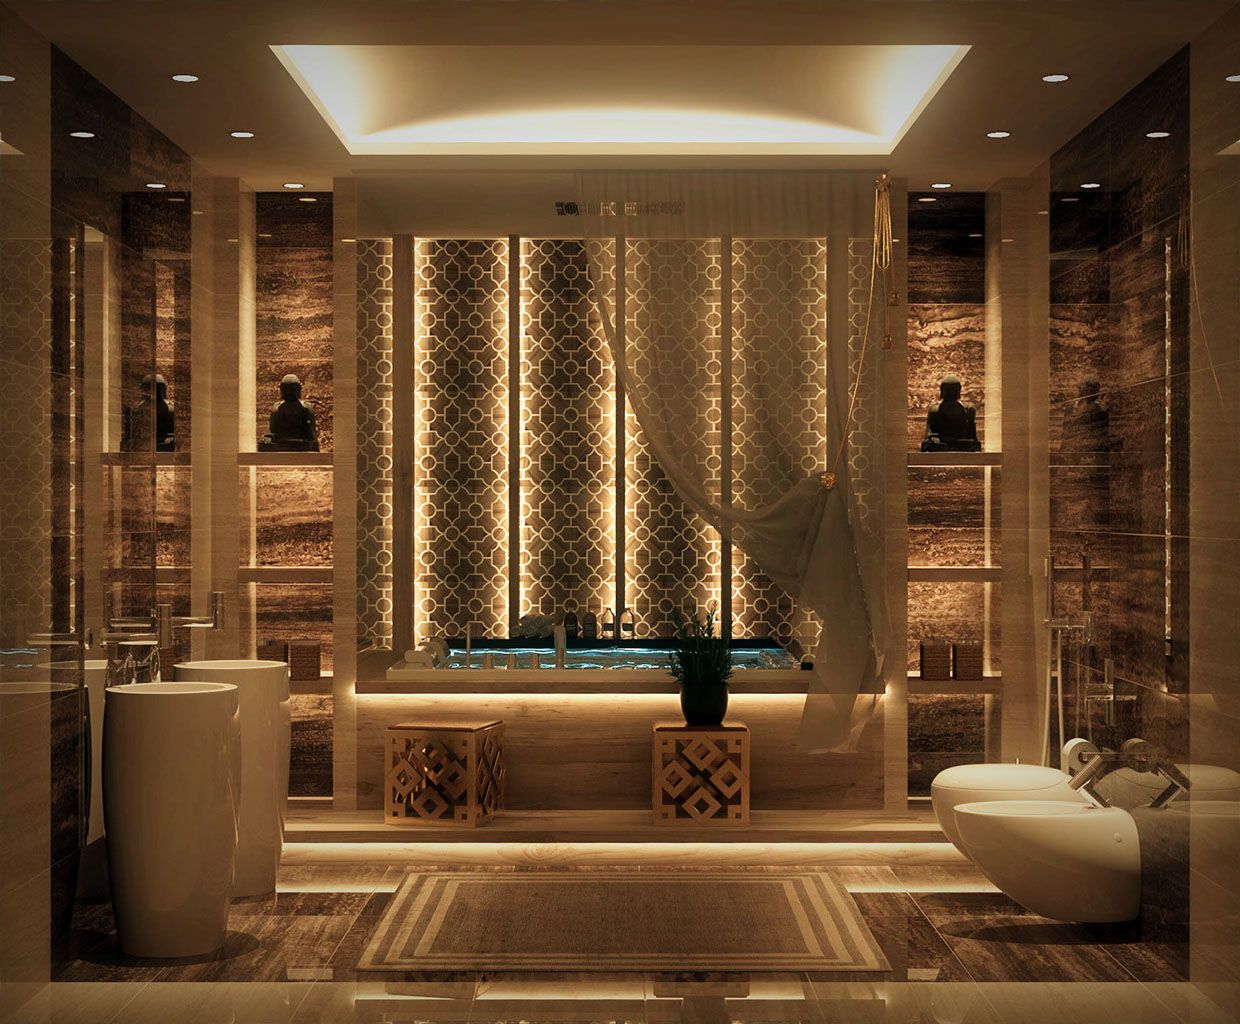 Pictures Of Luxury Bathrooms Custom Luxurious Bathrooms With Stunning Design Details Design Inspiration